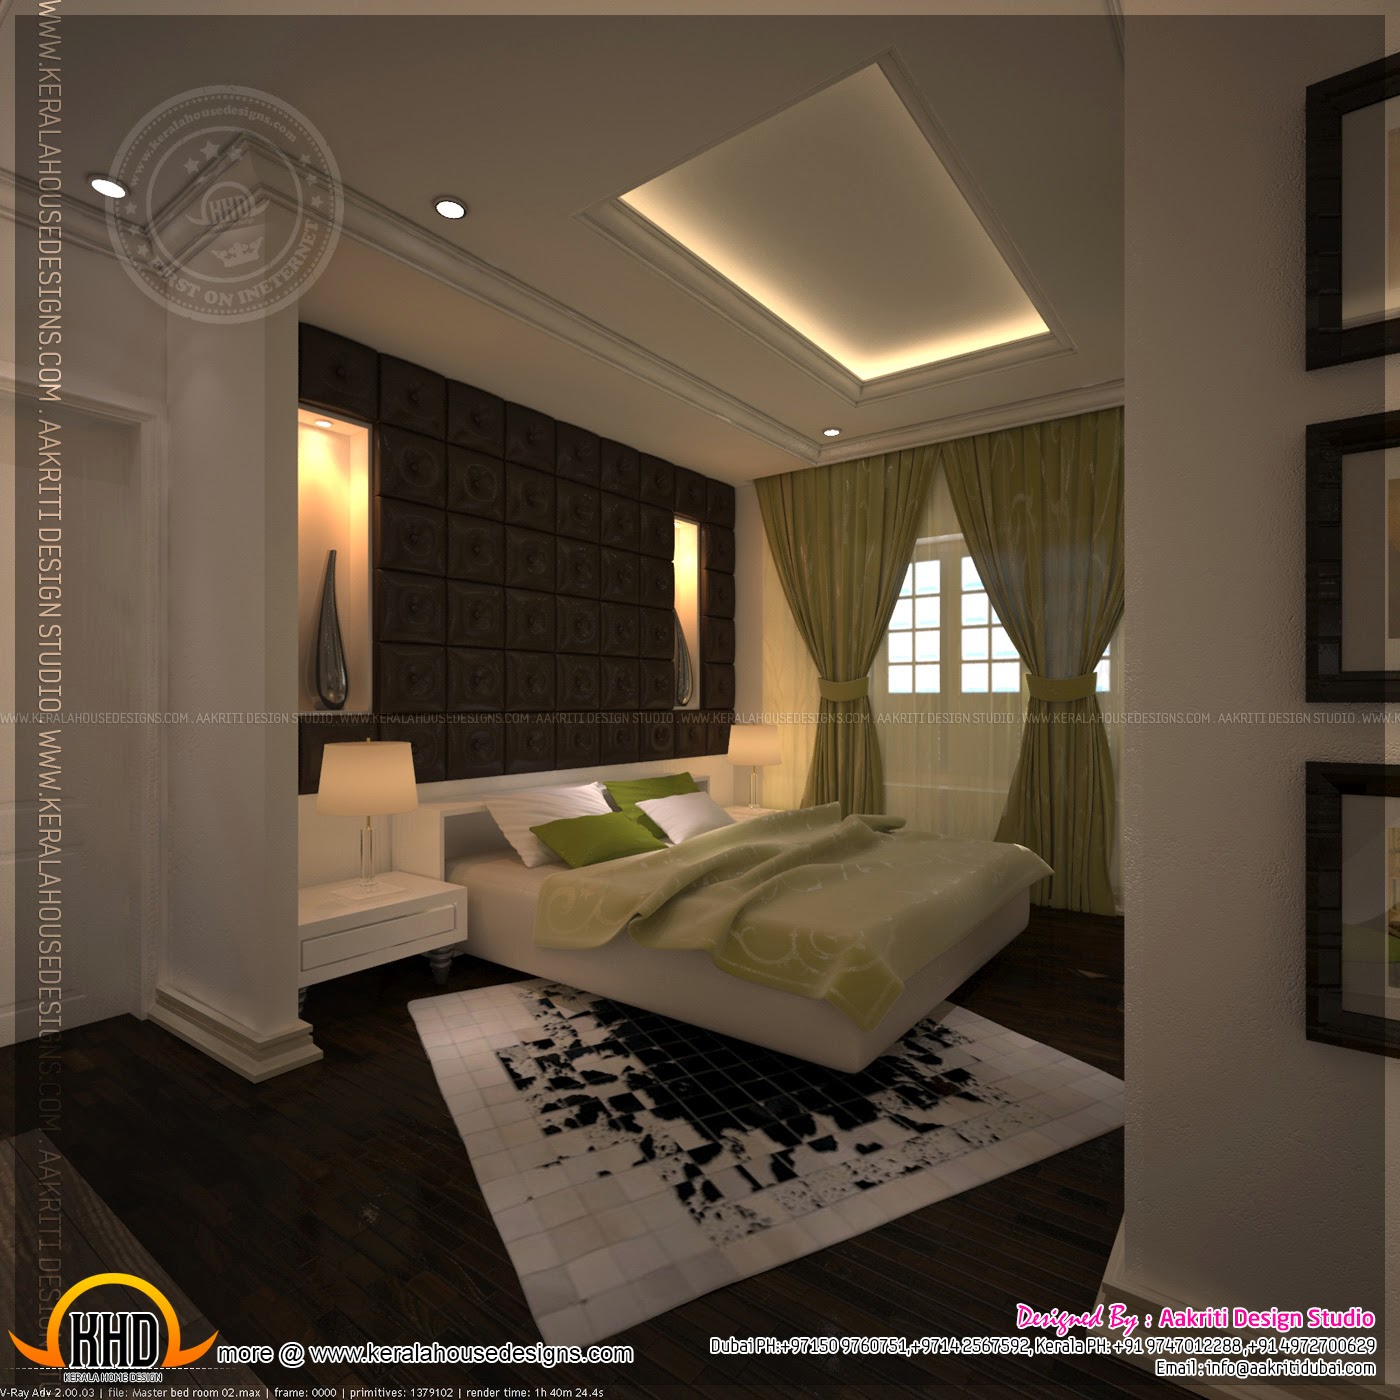 Master bedroom and bathroom interior design kerala home design and floor plans - Interior designbedroom in ...